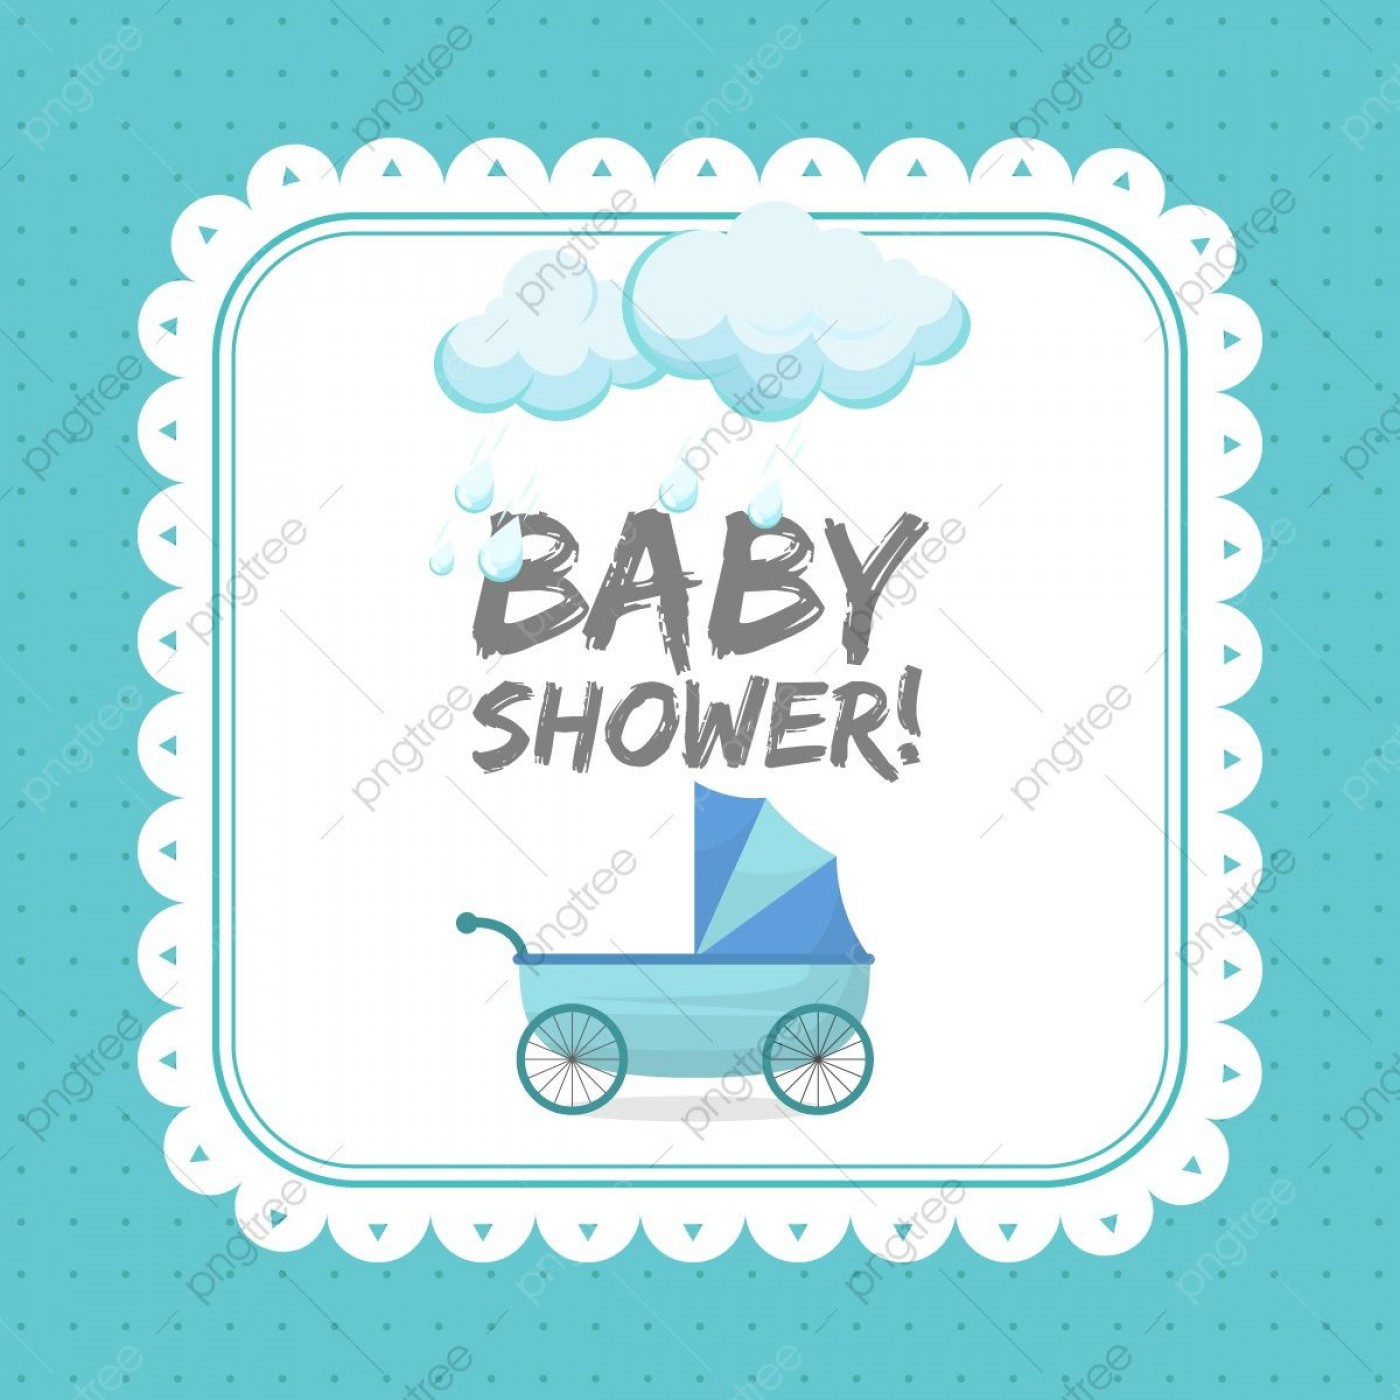 009 Top Baby Shower Invitation Card Template Free Download Example  Indian1400